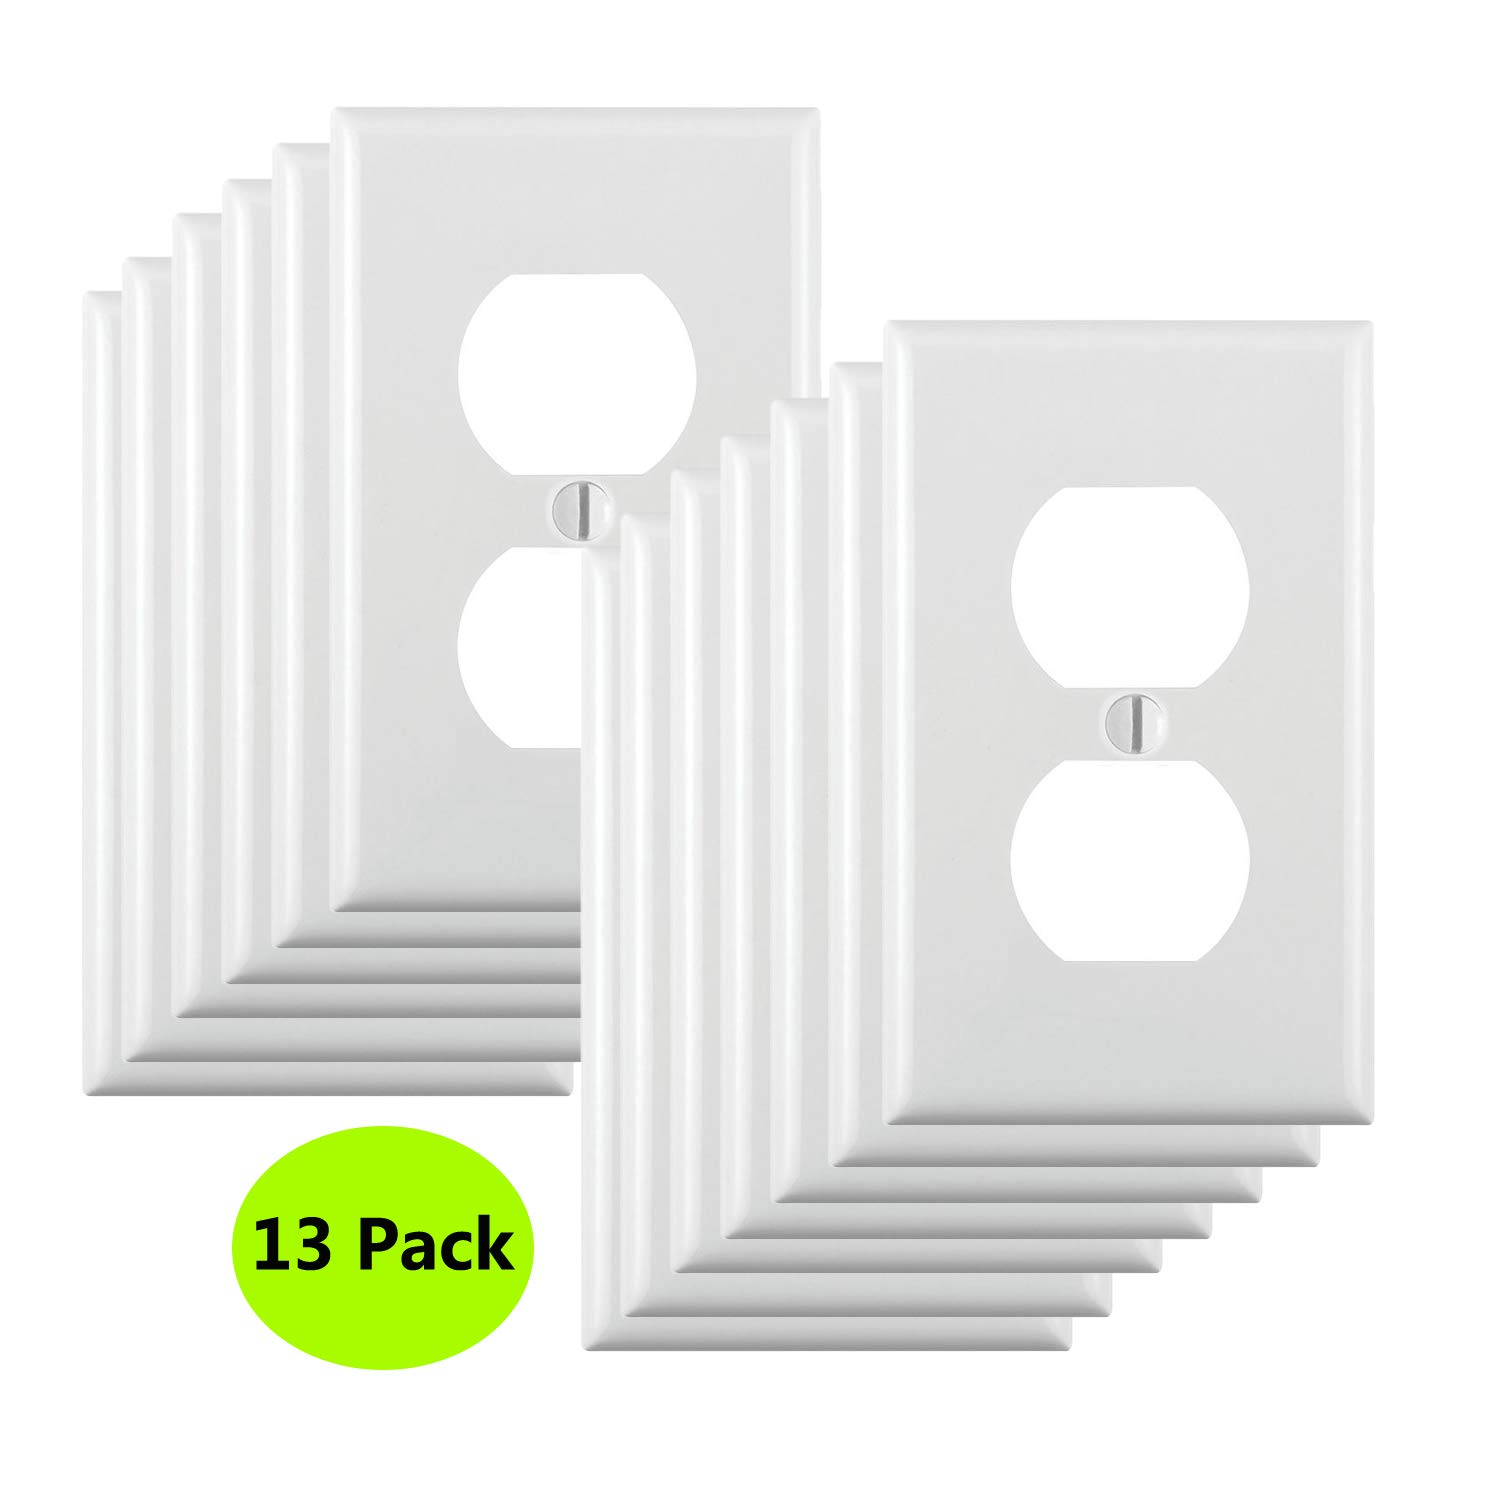 13-Pack, Duplex Receptacle Outlet Wall Plates, Standard Size,Impact Resistance, Anti Aging and High Temperature Resistance PC Face Plates,White by JustFast